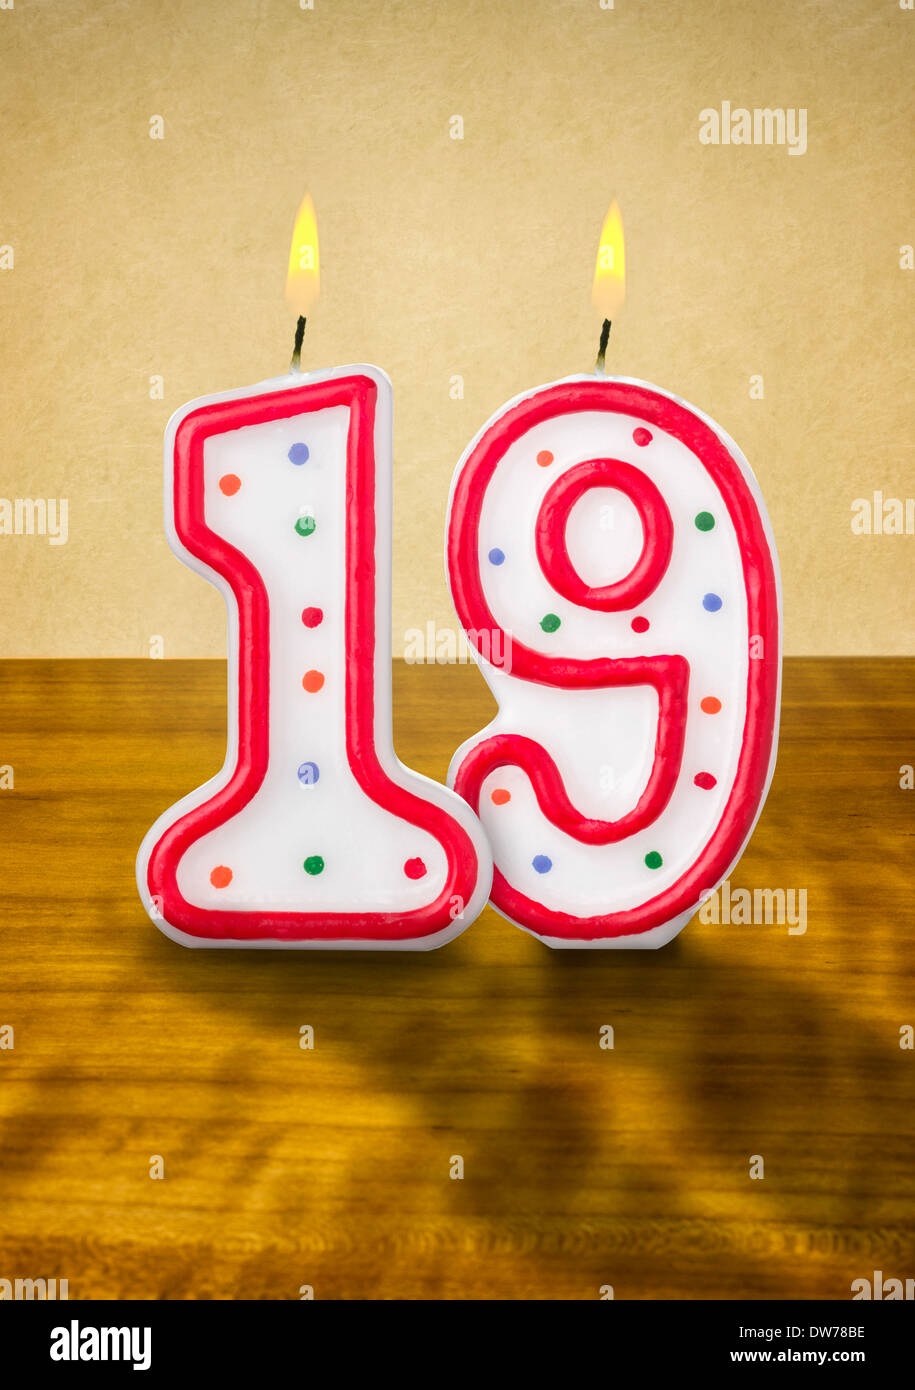 Burning Birthday Candles Number 19 Stock Photo Royalty